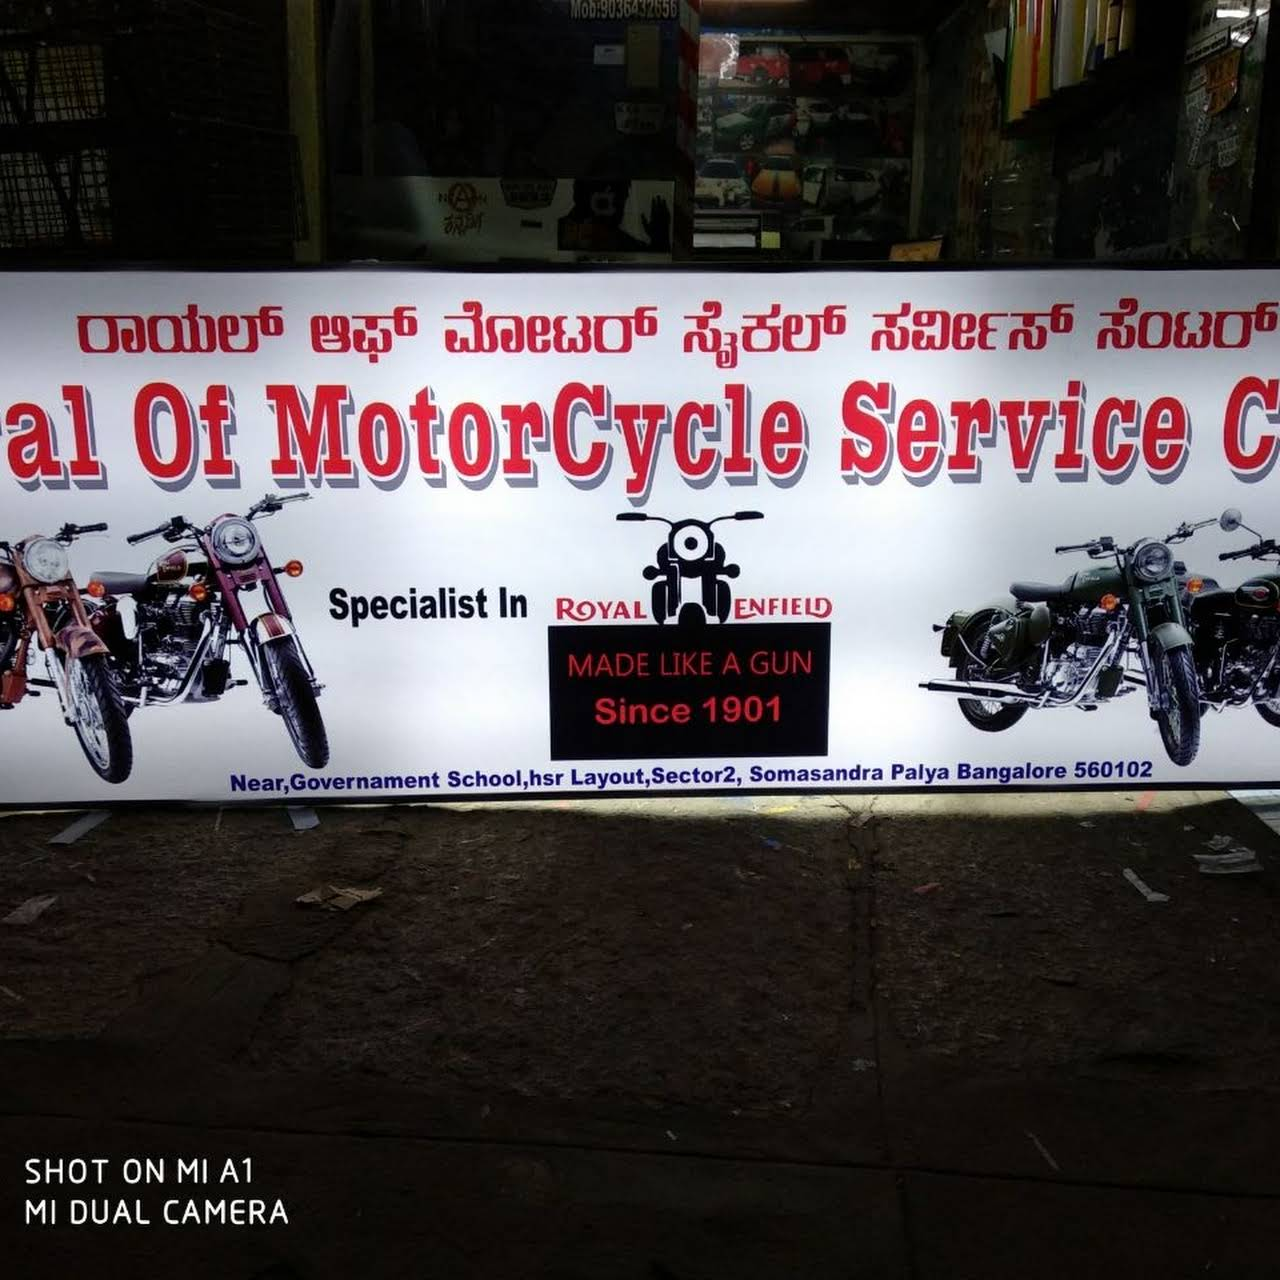 ROYAL OF MOTORCYCLE - Royal ENFIELD WORK SHOP - Royal